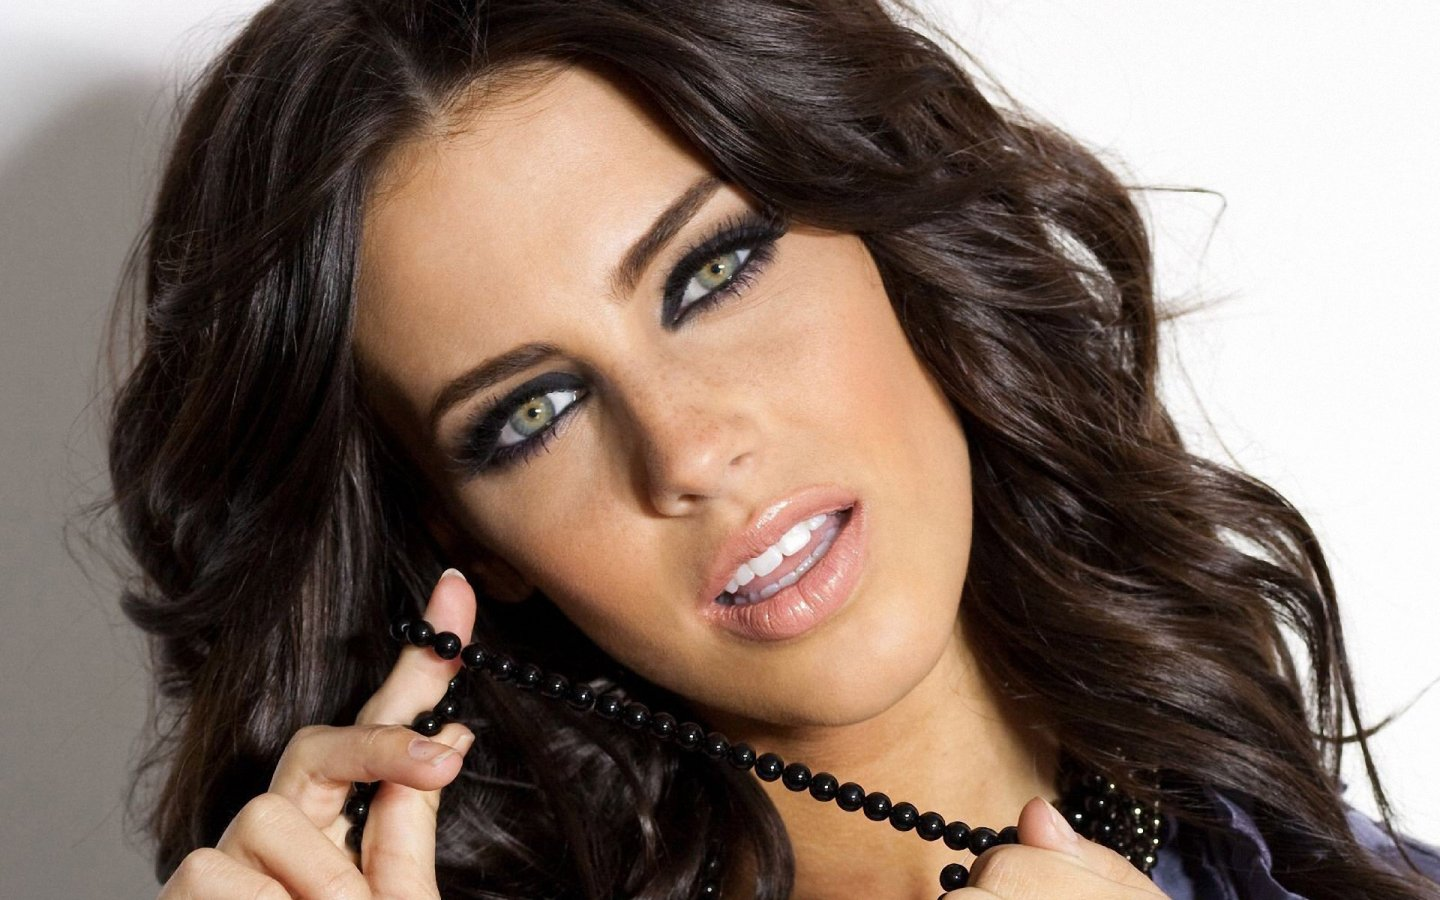 jessica lowndes hot 37880